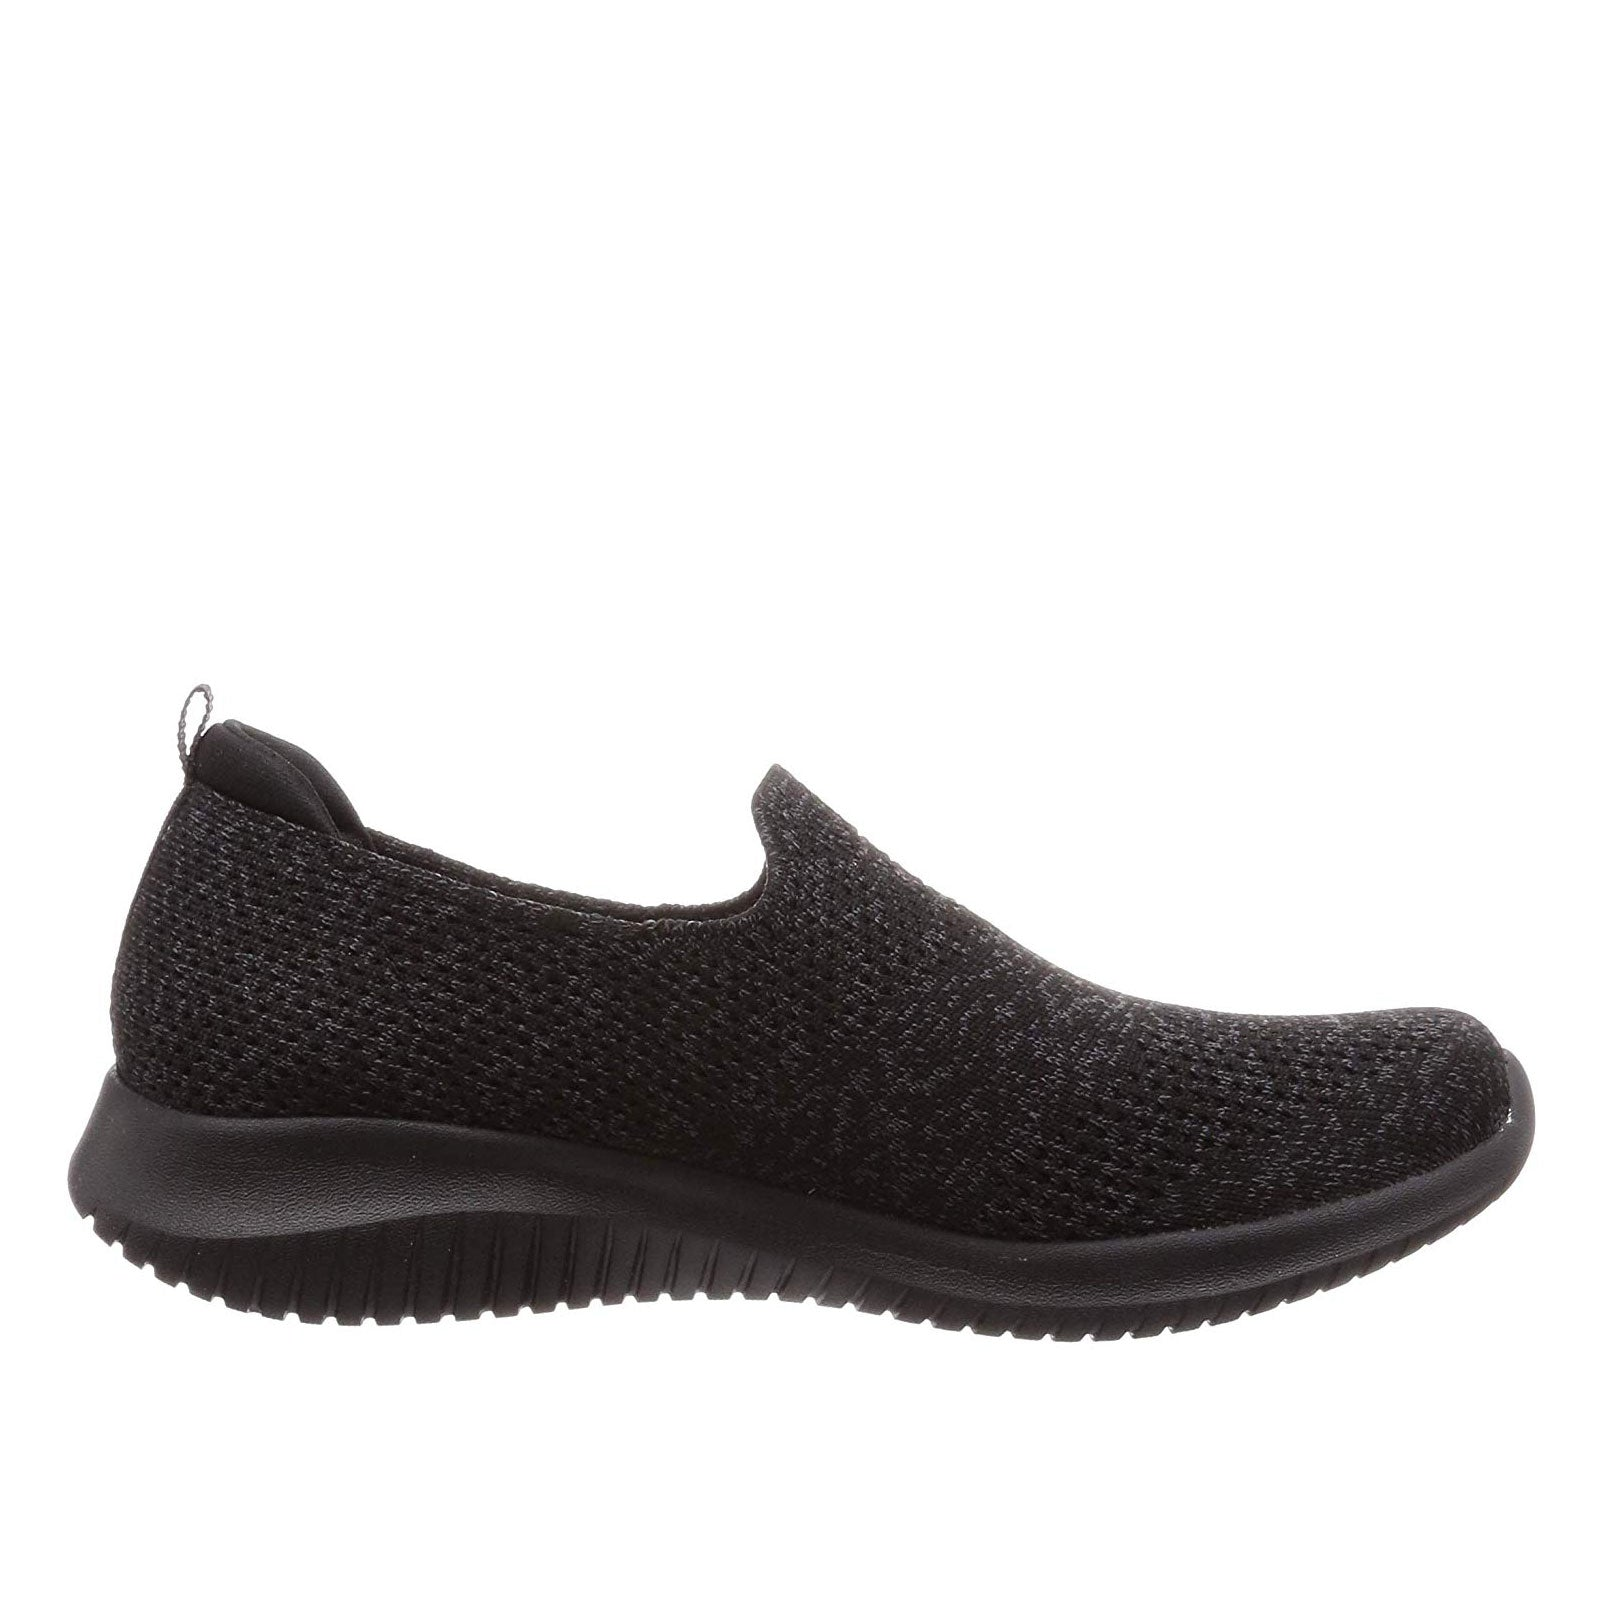 skechers stretch knits shoes